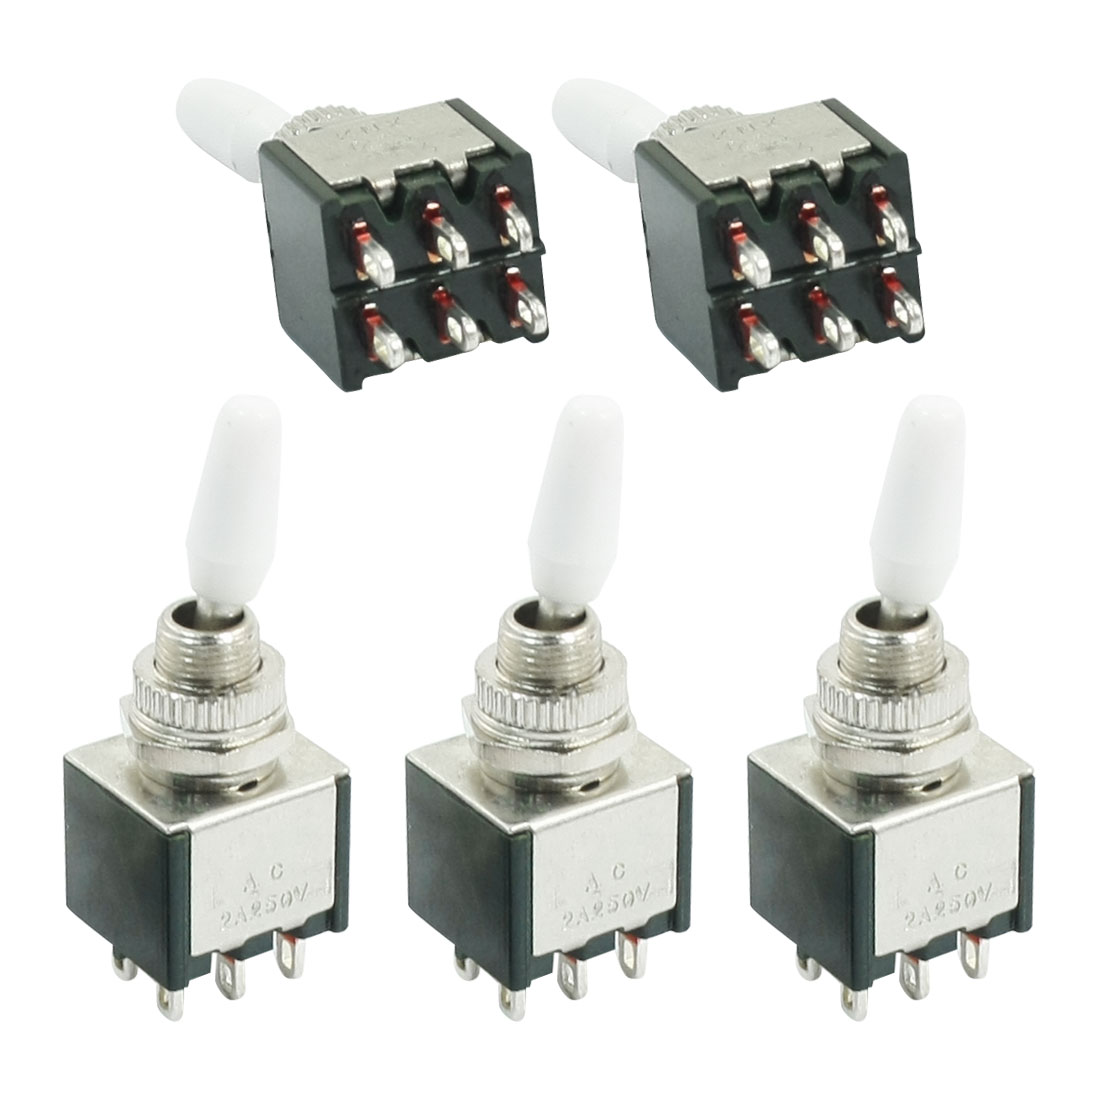 5Pcs 6mm Panel Cutout Dia 2 Position 2P2T Toggle Switch AC 250V 2A